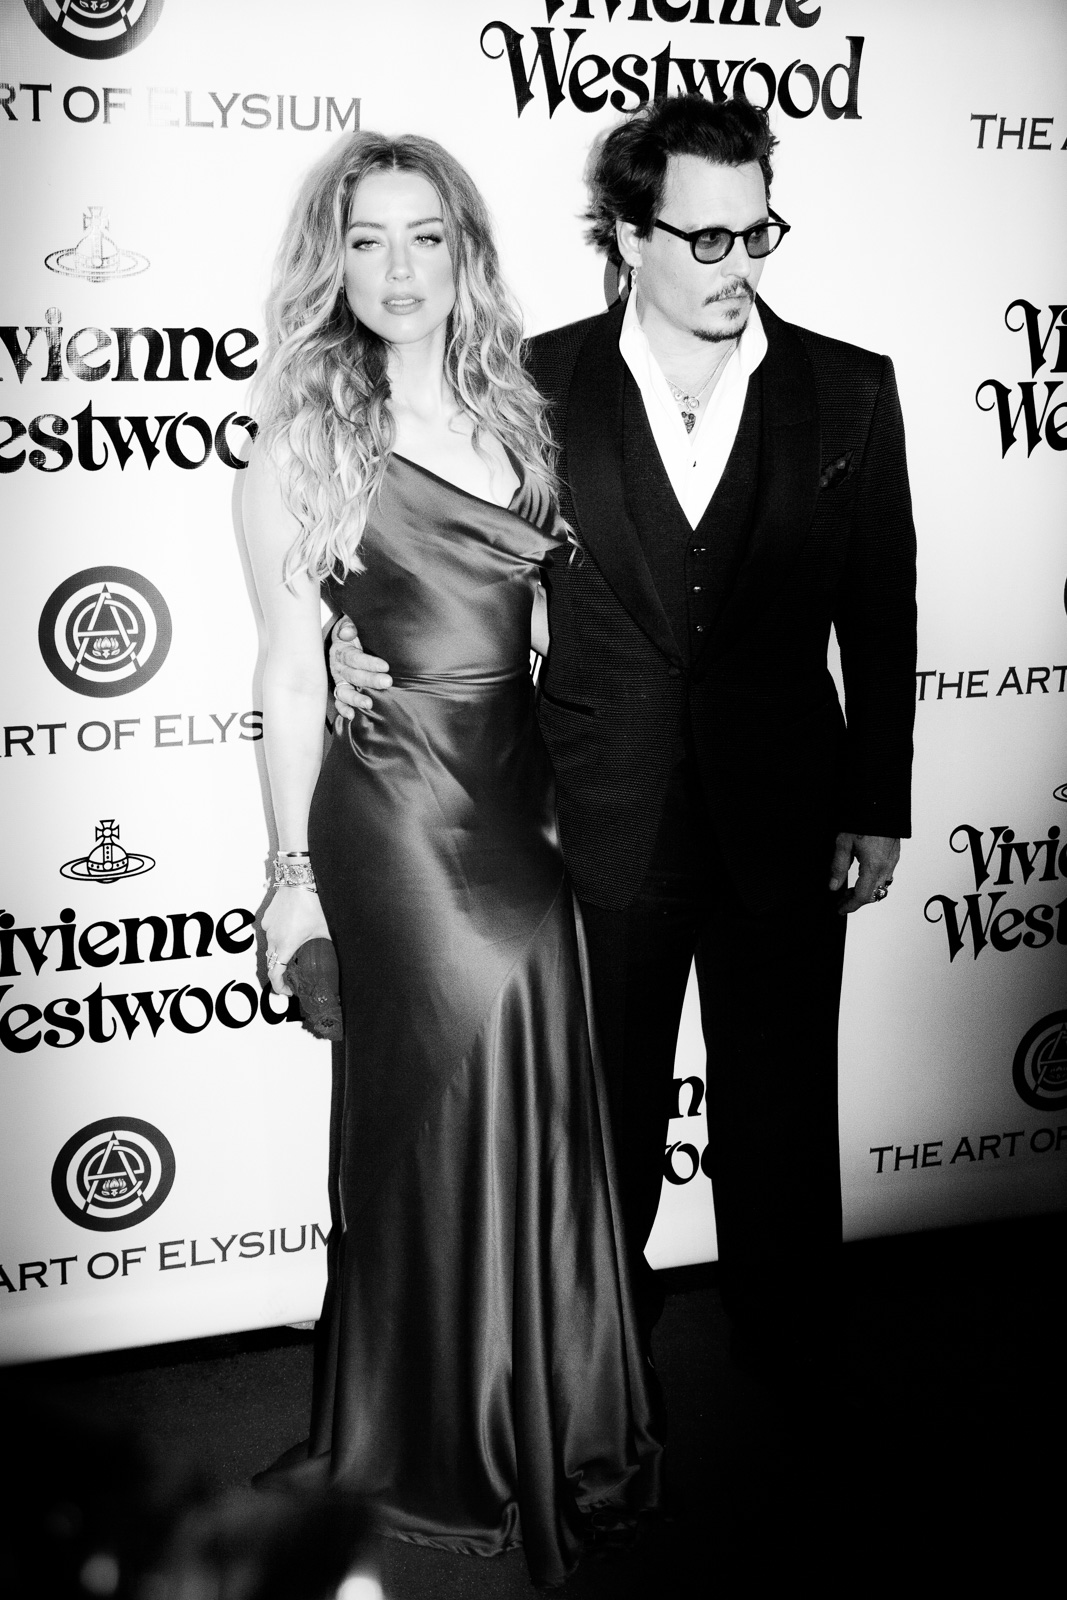 Actress Amber Heard and actor Johnny Depp attend The Art of Elysium 2016 HEAVEN Gala presented by Vivienne Westwood & Andreas Kronthaler at 3LABS on January 9, 2016 in Culver City, California.